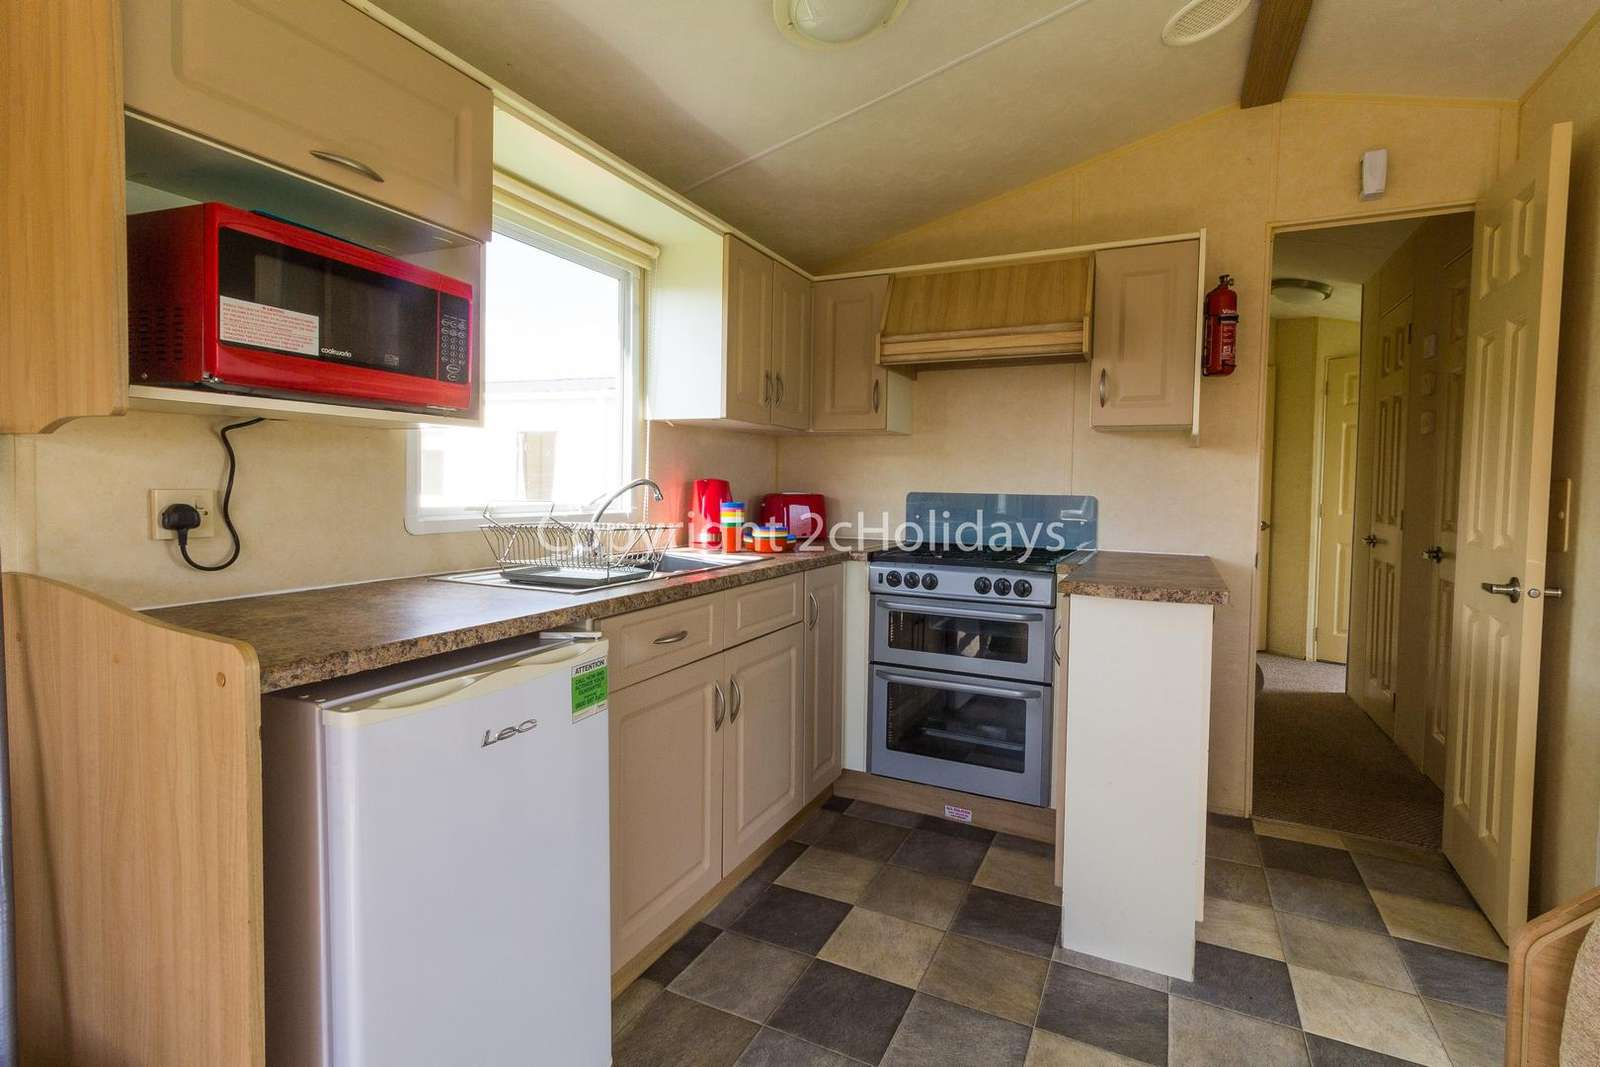 fully equipped kitchen, ideal for self-catering breaks